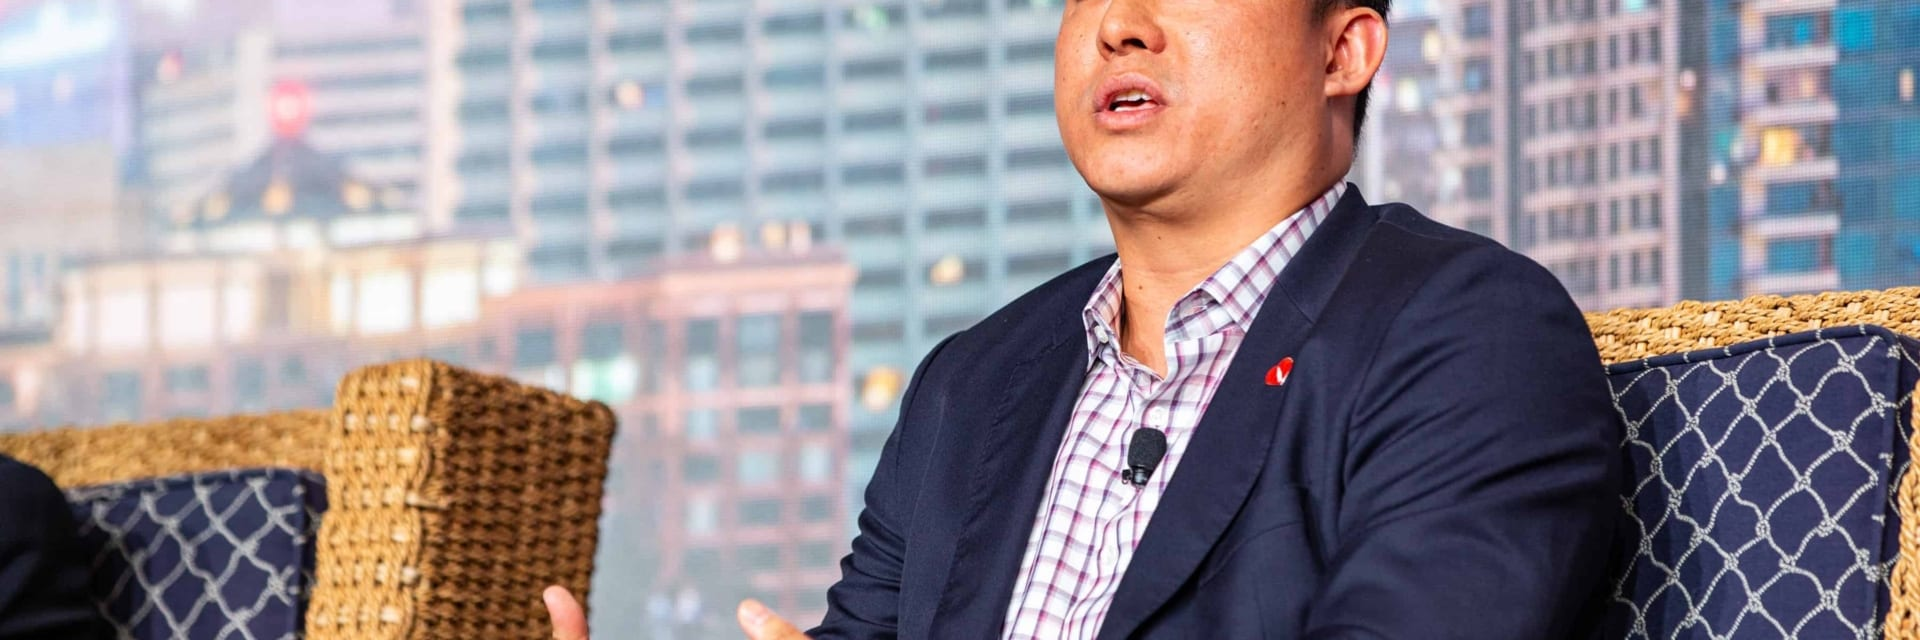 TJ Nguyen, of Coca-Cola Buyers' Sales and Services, speaks about change management in procurement